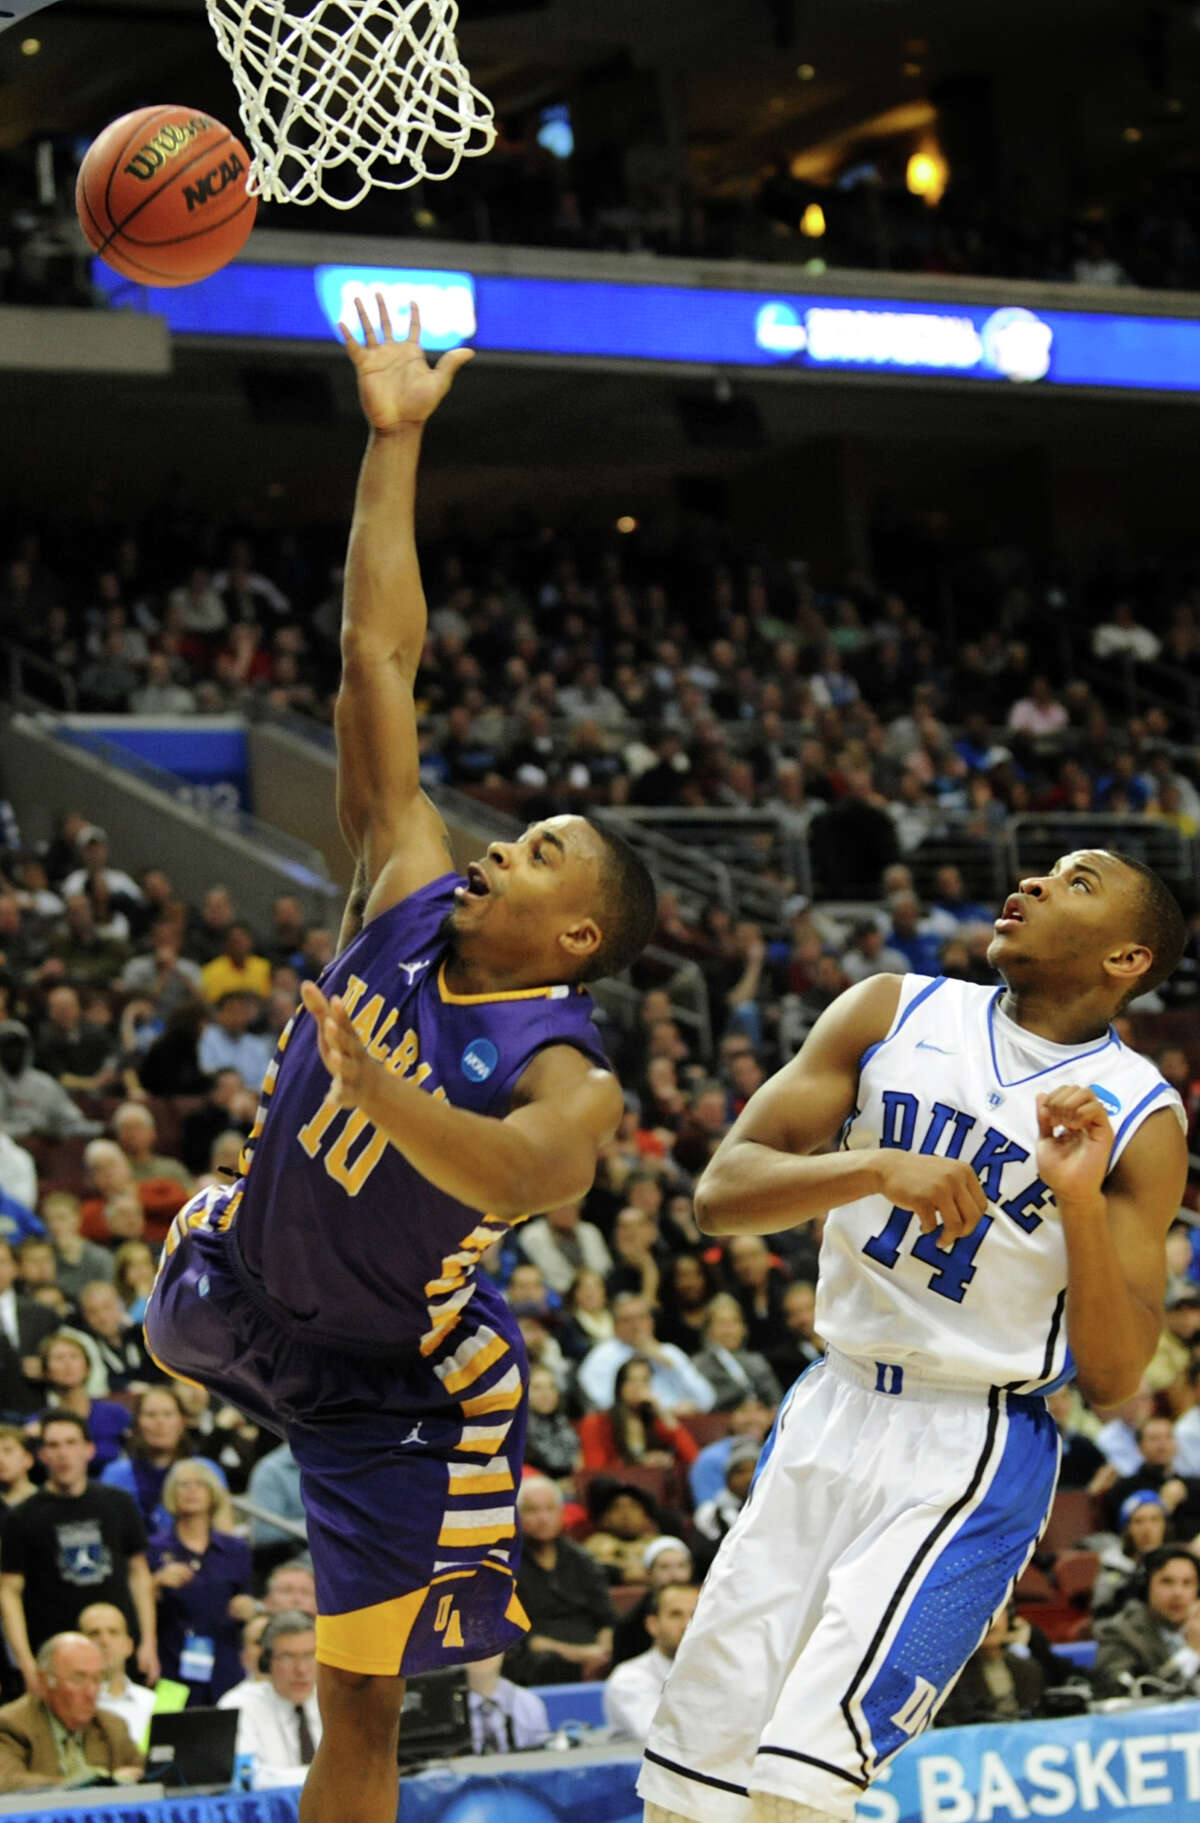 UAlbany's Mike Black, left, shoots for the hoop as Duke's Rasheed Sulaimon defends in the second round NCAA Tournament on Friday, March 22, 2013, at Wells Fargo Center in Philadelphia, Penn. (Cindy Schultz / Times Union)